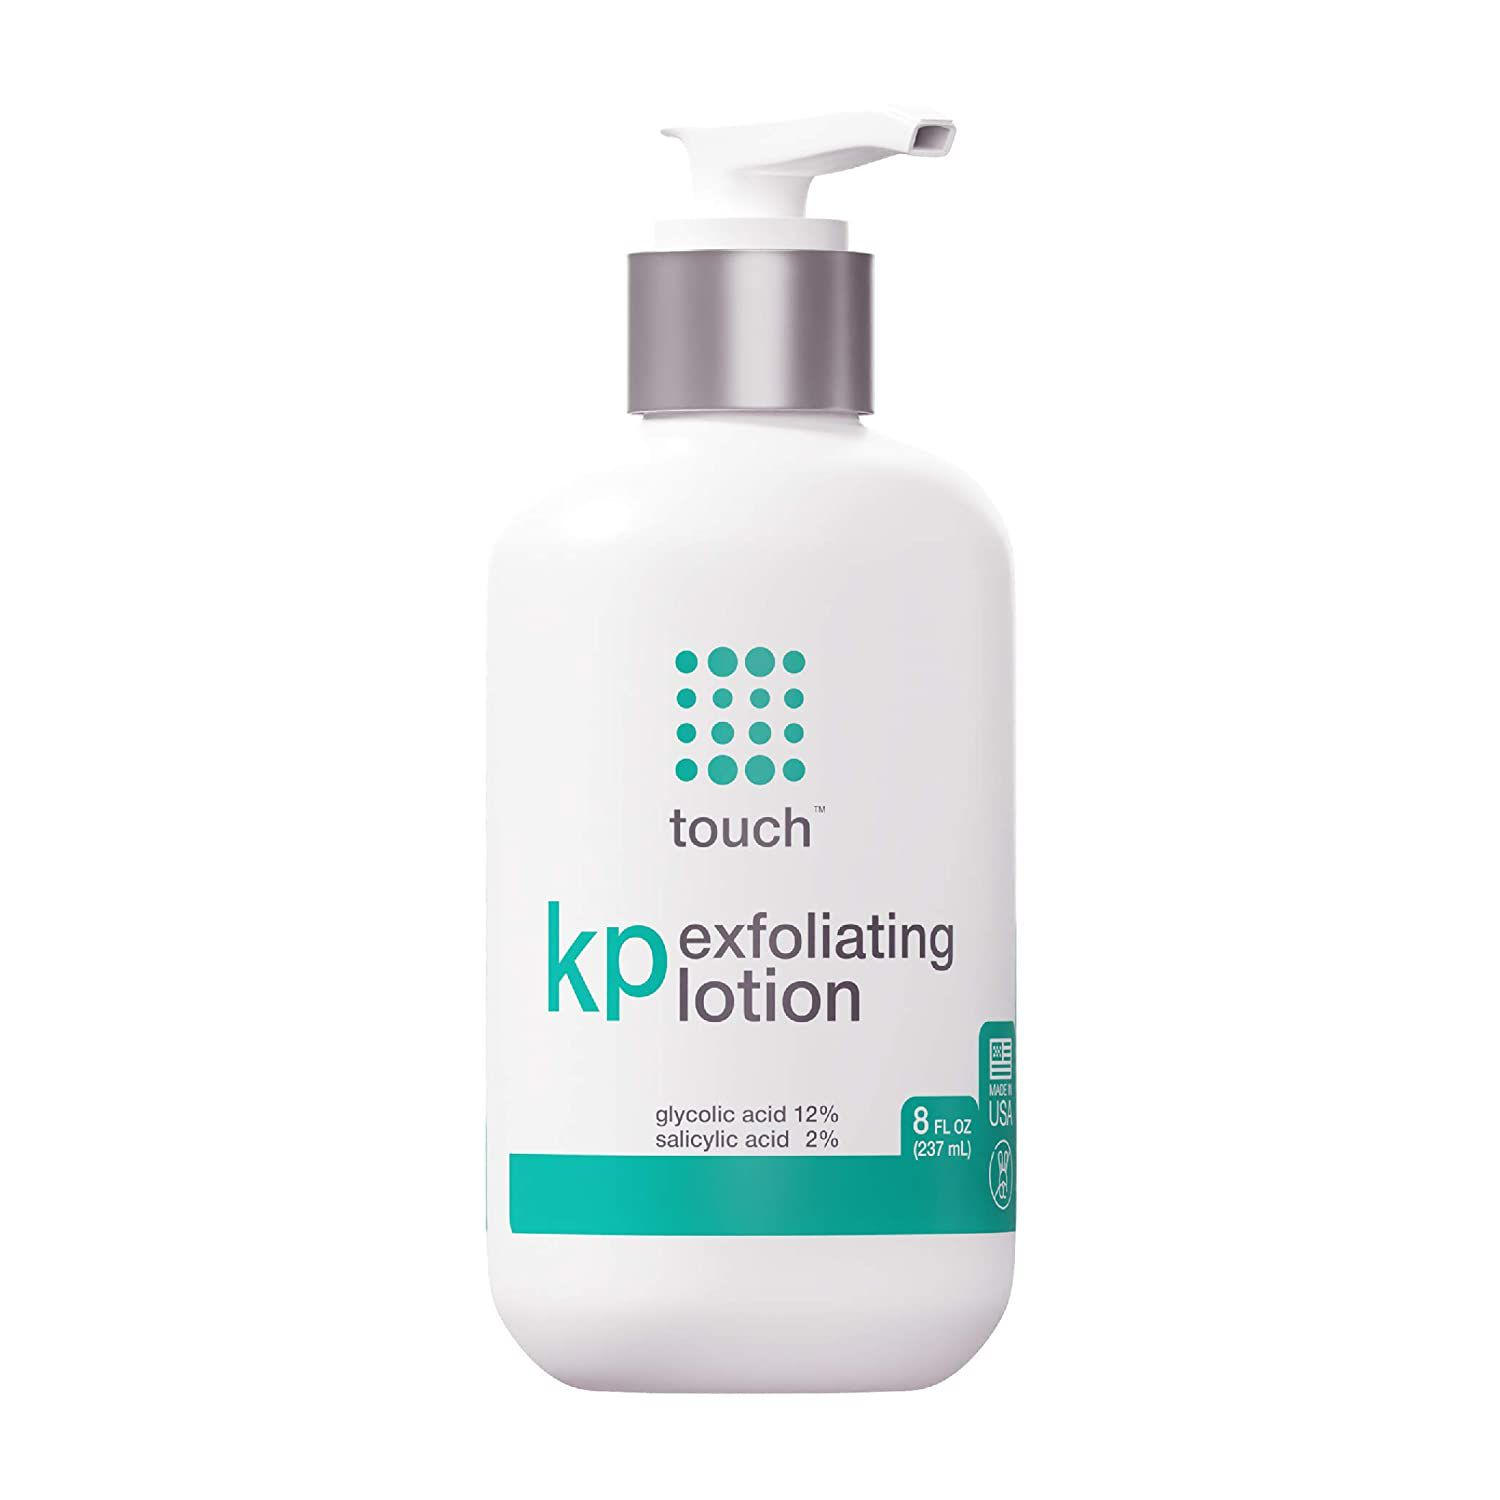 touch KP Treatment with 12% Glycolic Acid and 2% Salicylic Acid